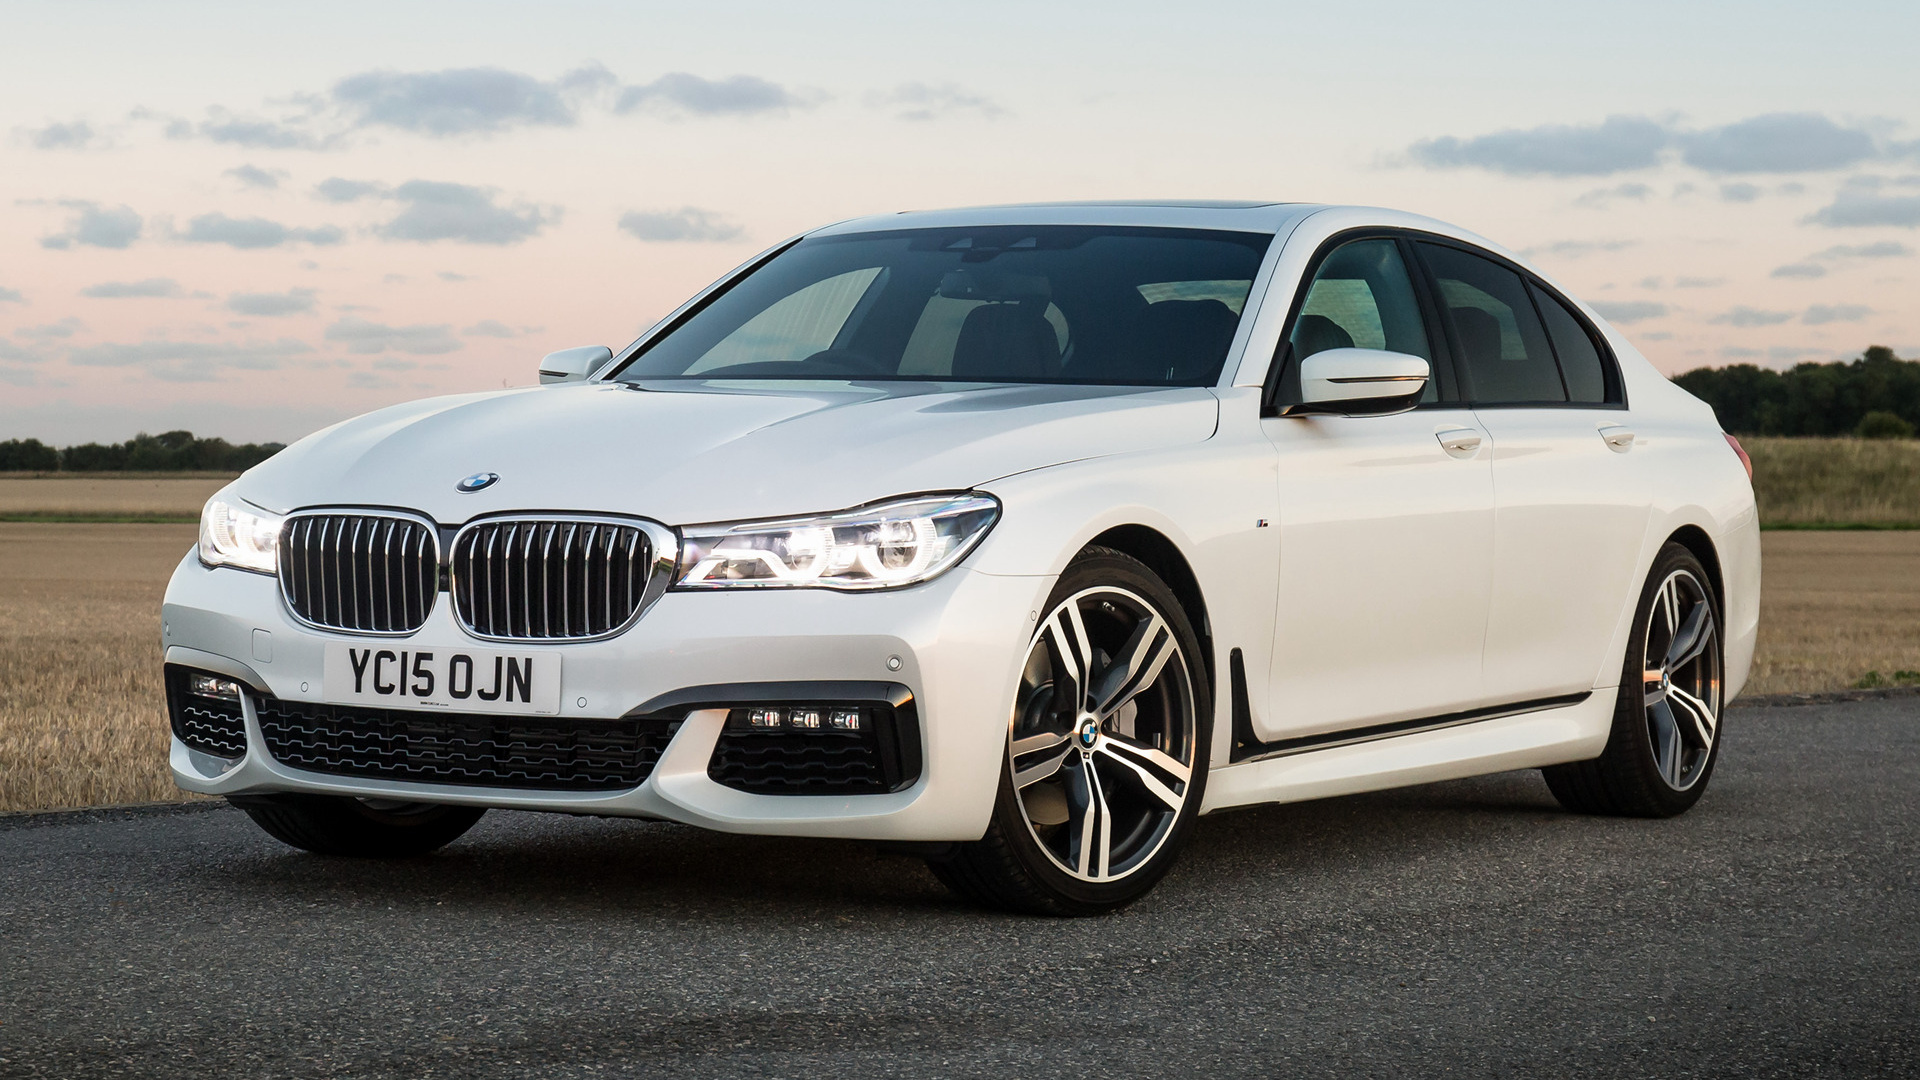 2015 Bmw 7 Series M Sport Uk Wallpapers And Hd Images